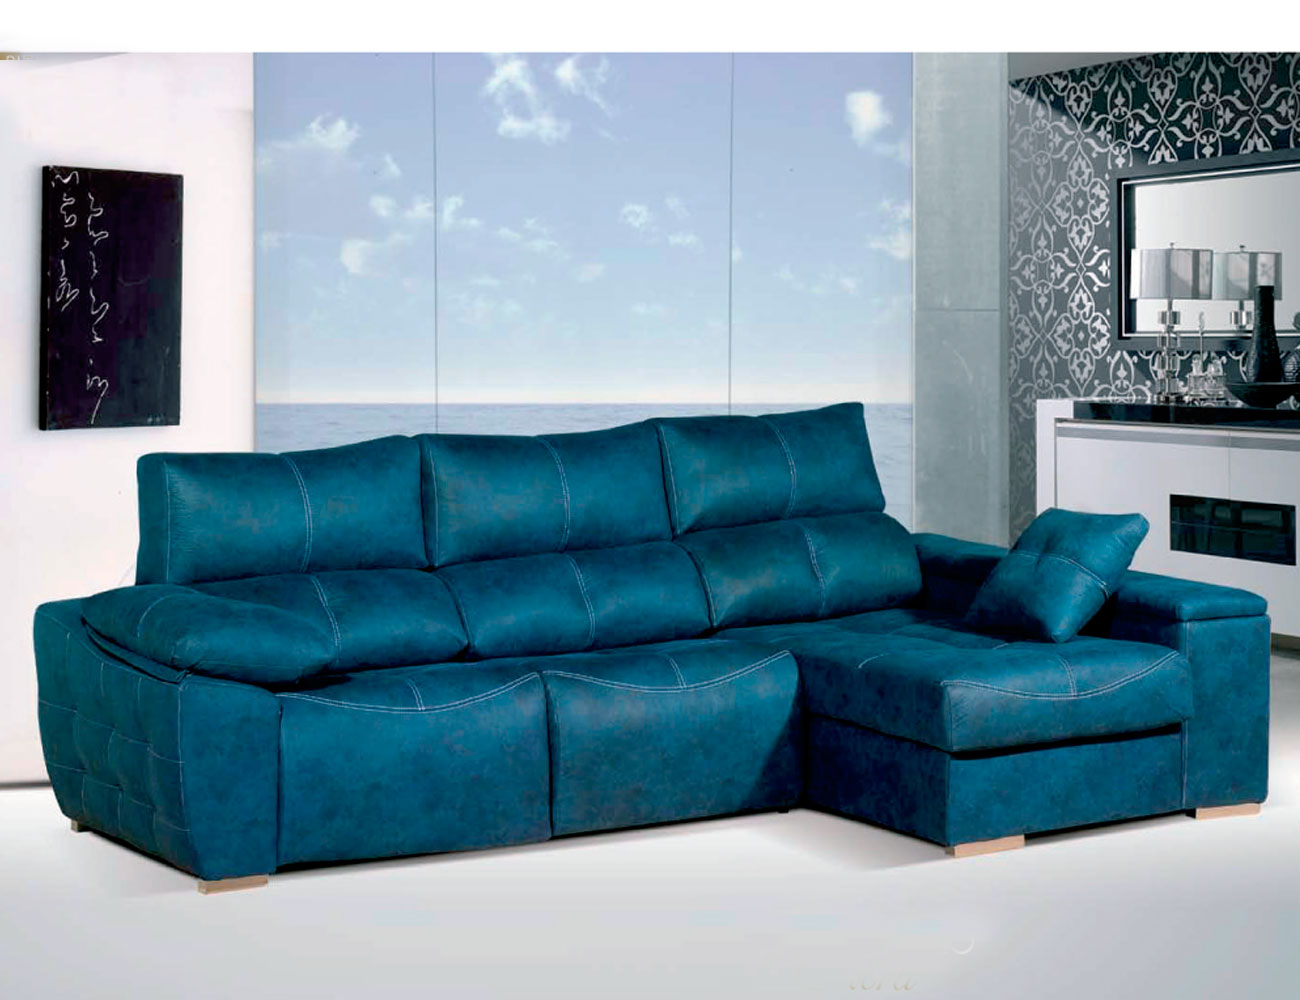 Sofa chaiselongue relax 2 motores anti manchas turquesa13